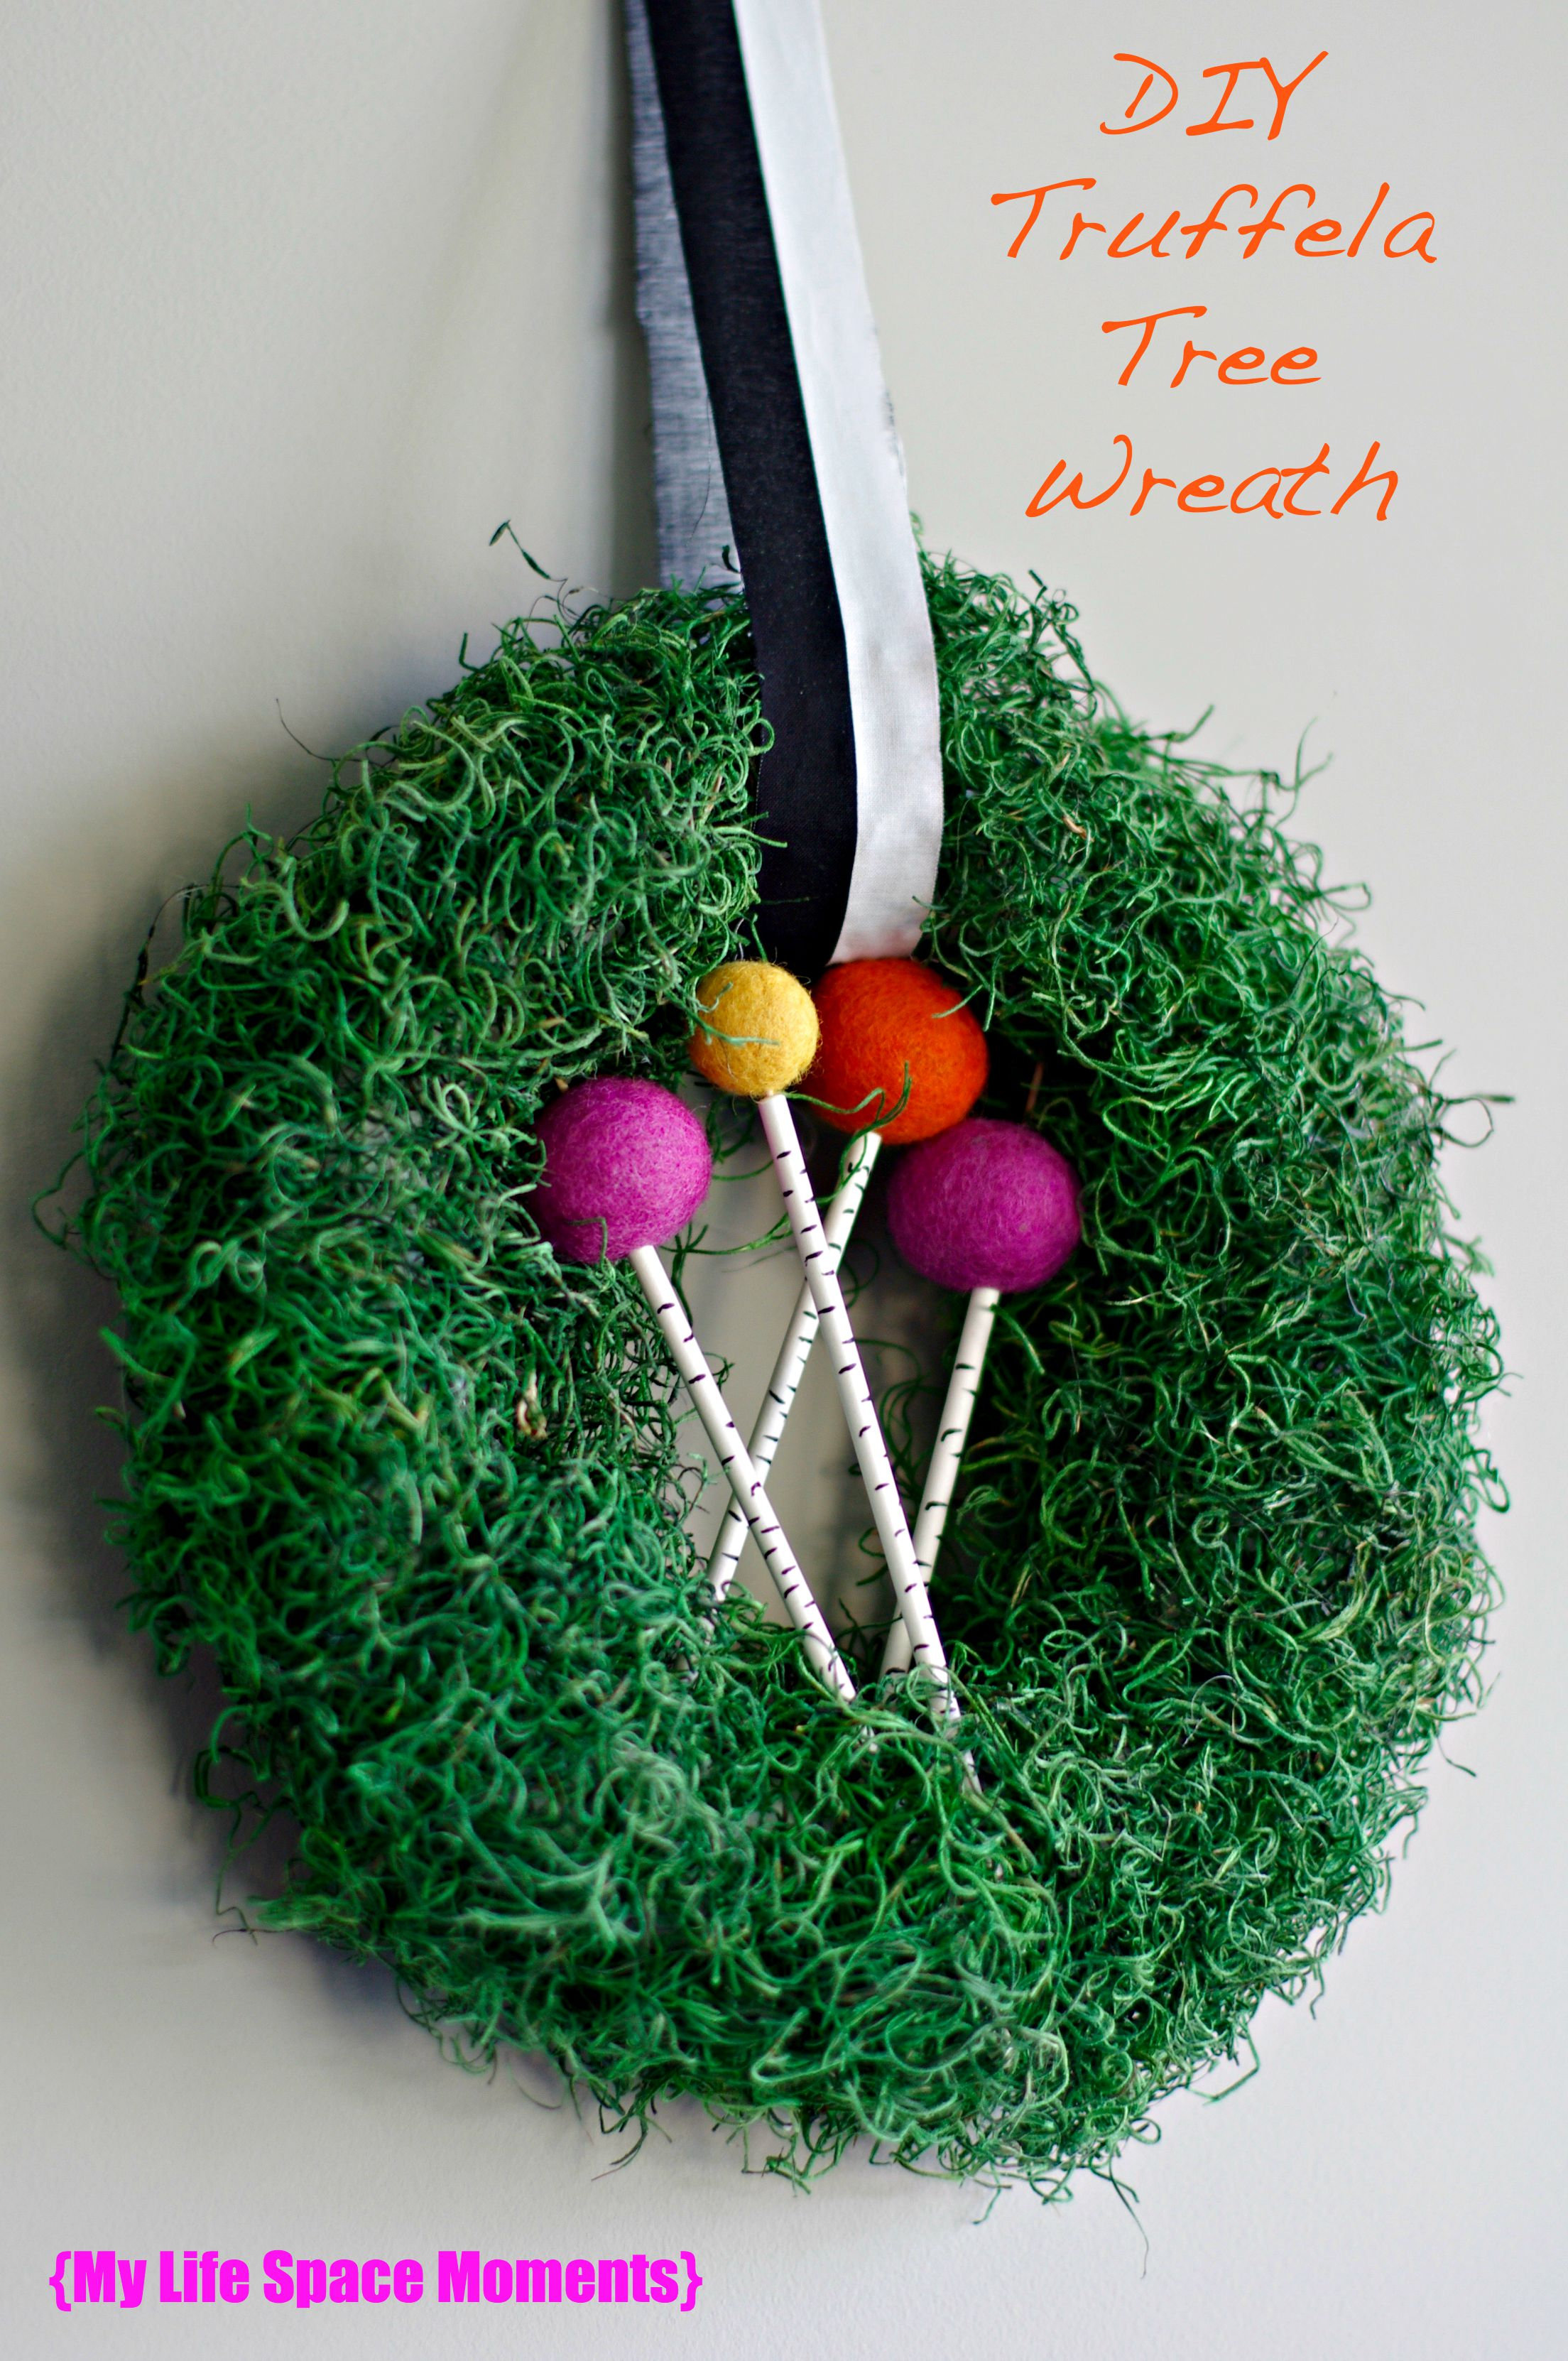 My DIY Truffela Tree Wreath Inspired by The Lorax - {My Life Space Moments}